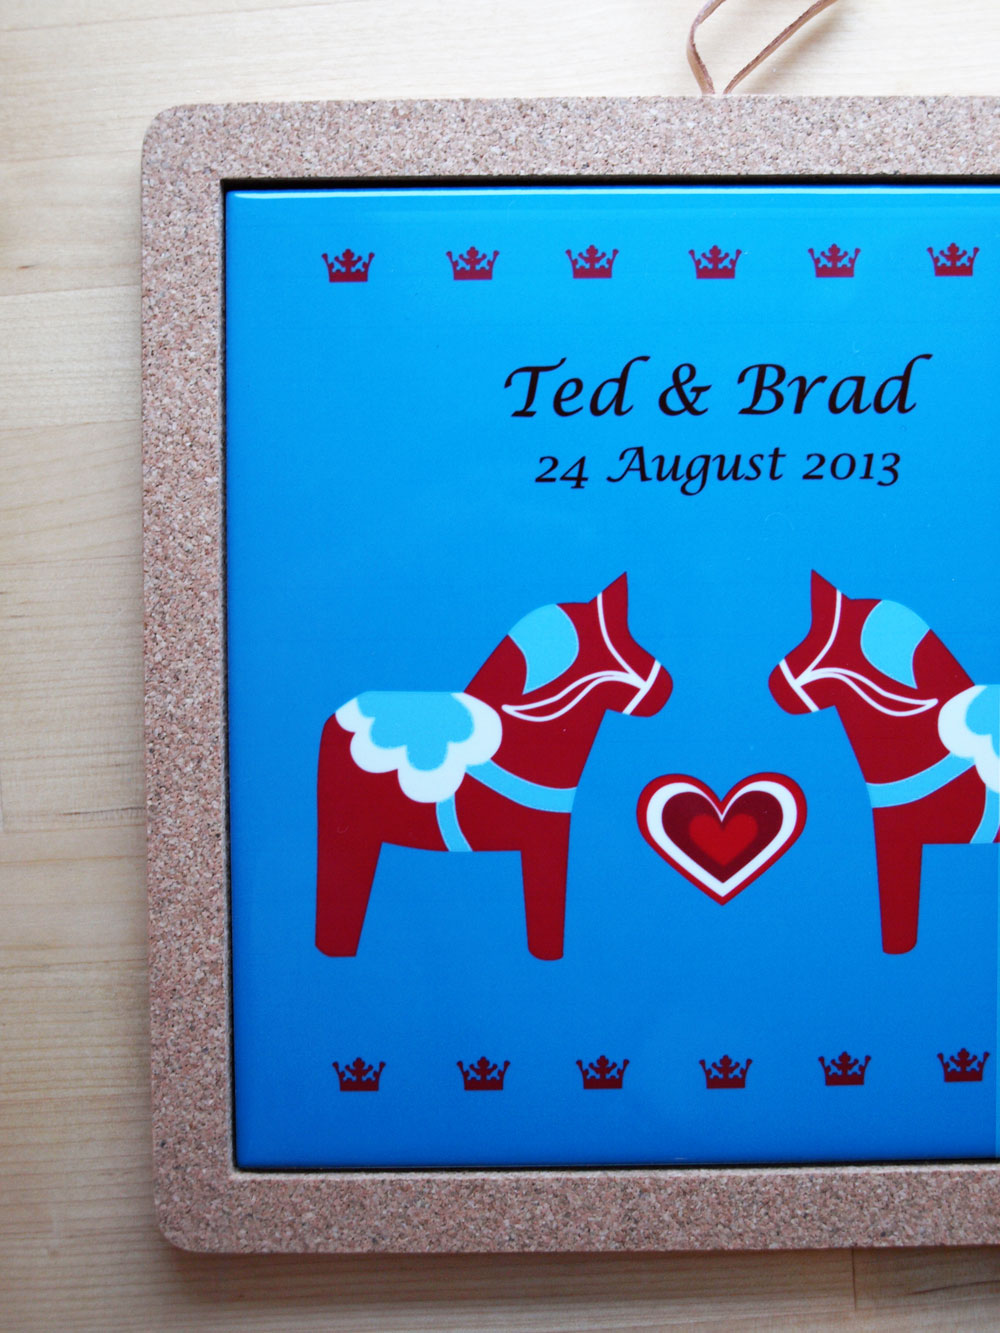 Congratulations to Brad and Ted on their wedding day! I hope it was a beautiful day in Stockholm.